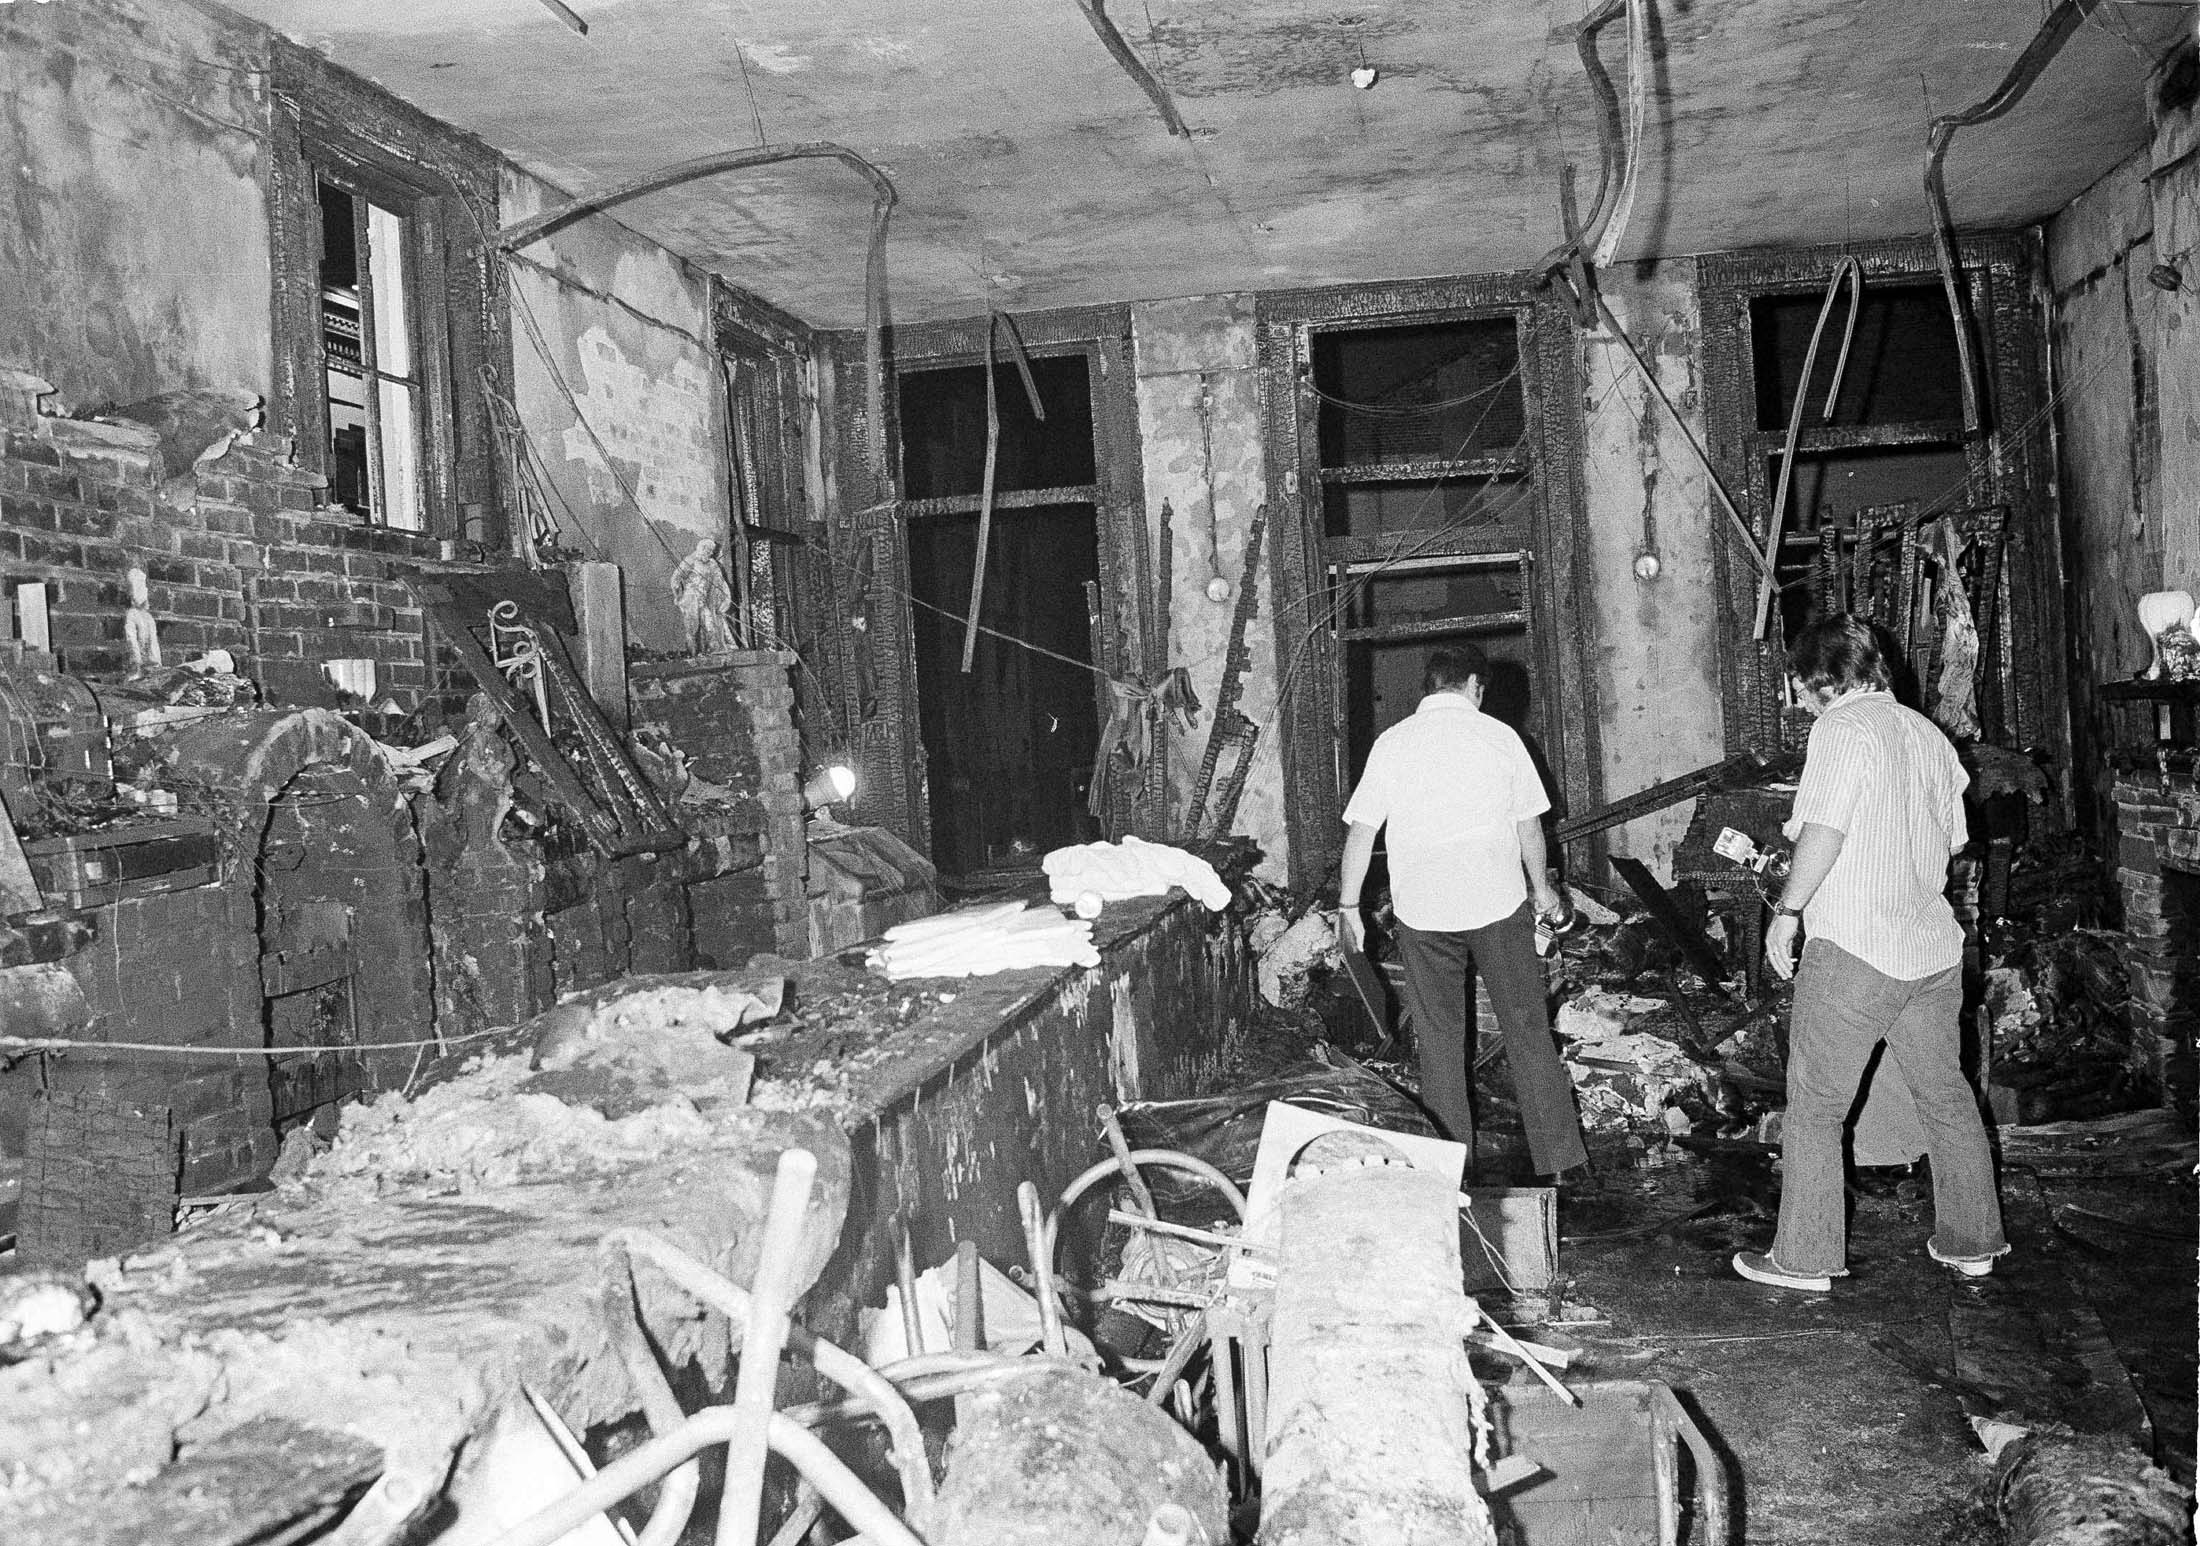 This is a view inside the UpStairs bar following a flash fire that left 29 dead and 15 injured, June 25, 1973. Most of the victims were found near the windows in the background. The bar is located in the New Orleans French Quarter.